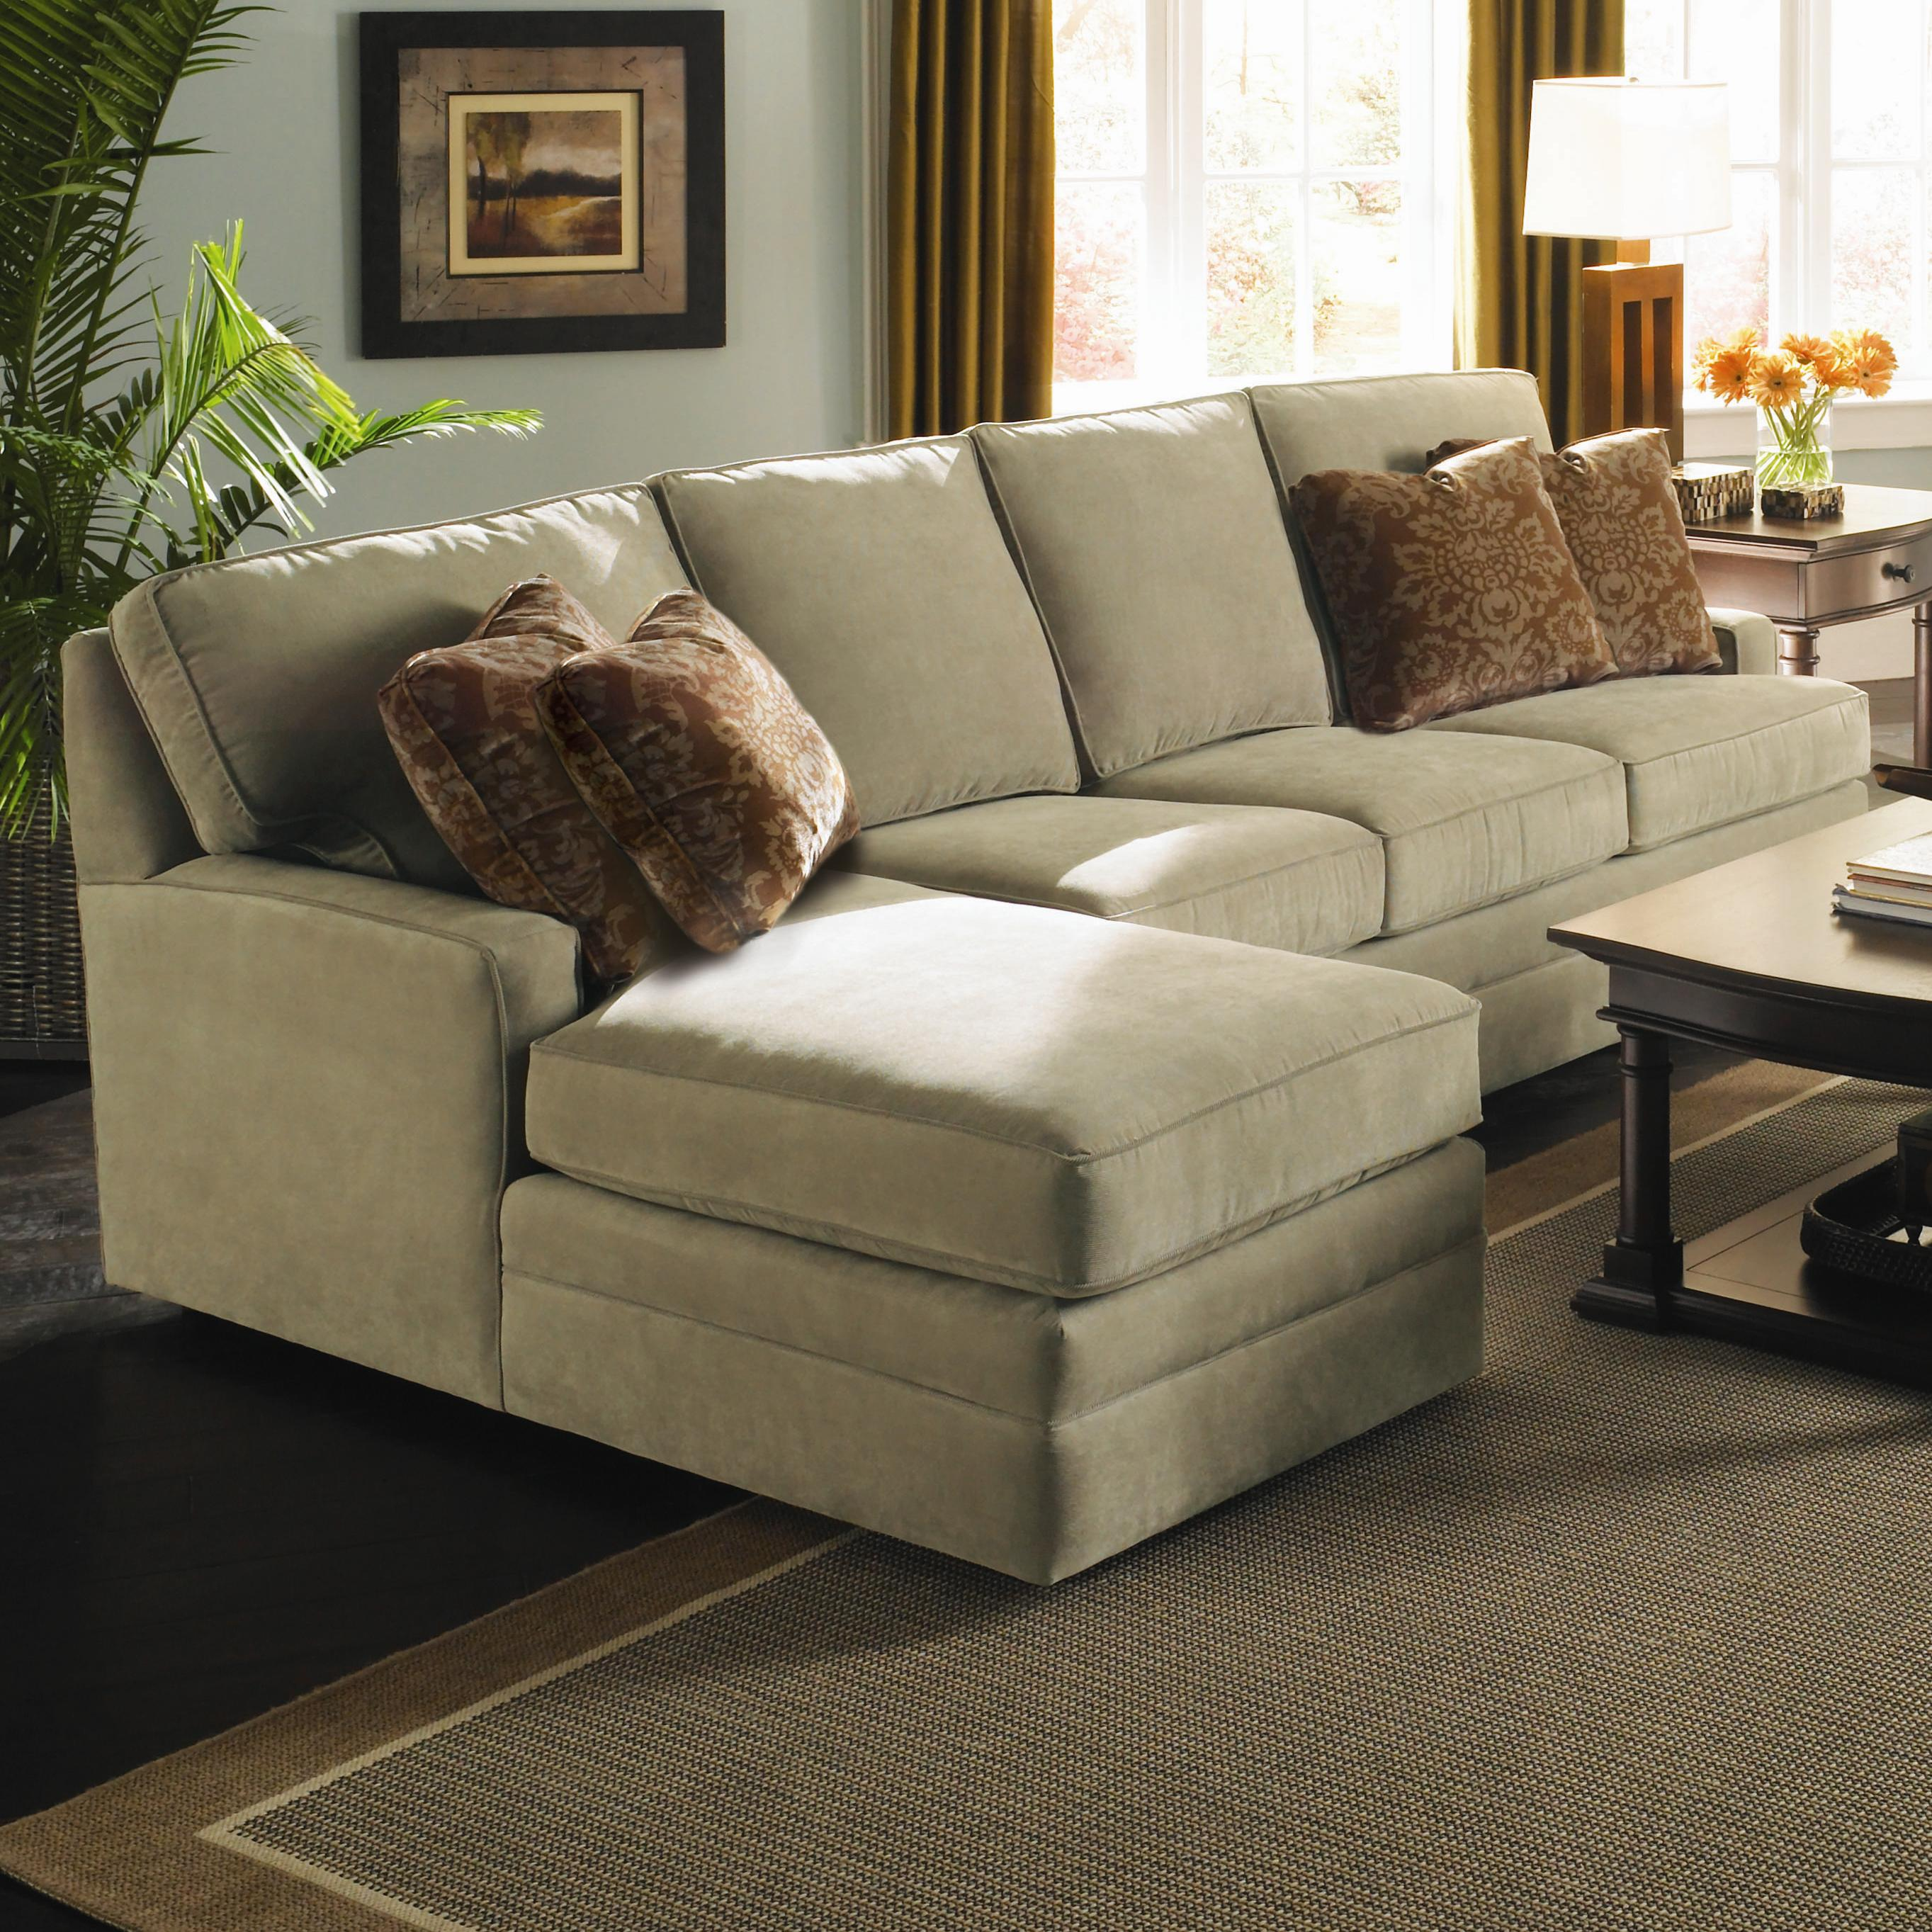 Custom Select Upholstery Custom 2-Piece Sectional by Kincaid Furniture at Johnny Janosik